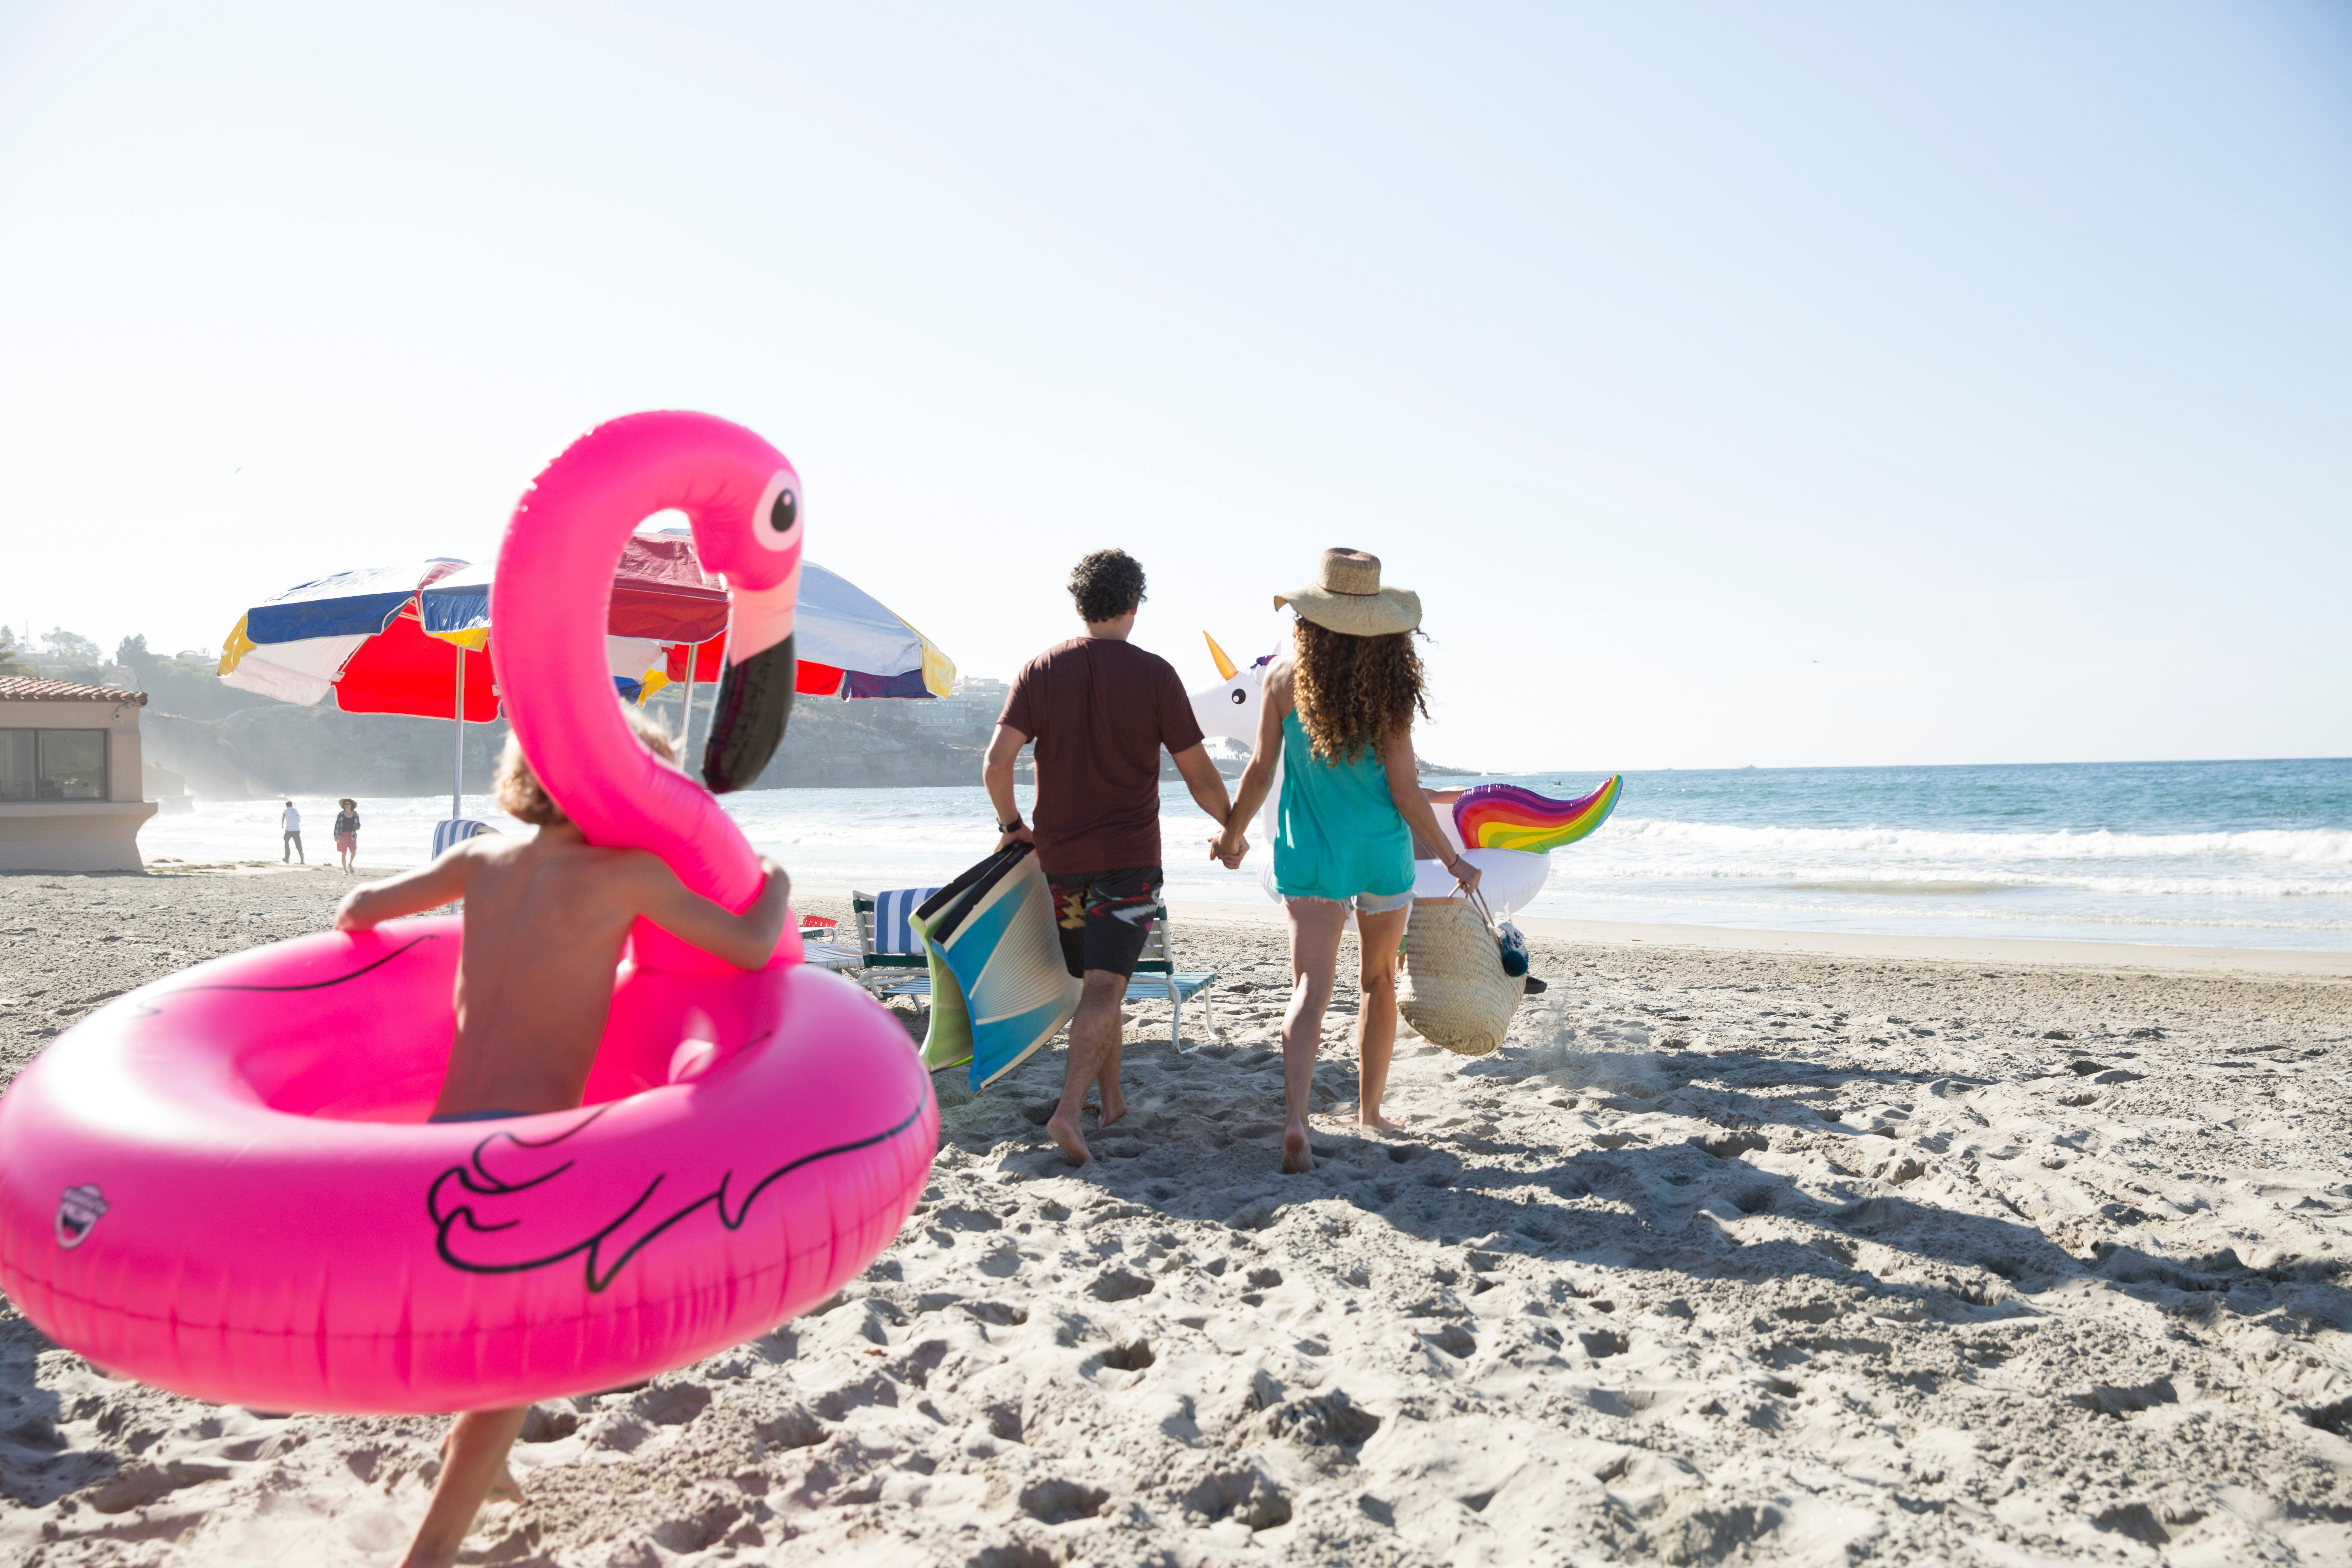 A child runs with an inflatable flamingo around him behind parents carrying beach gear on La Jolla Shores beach.